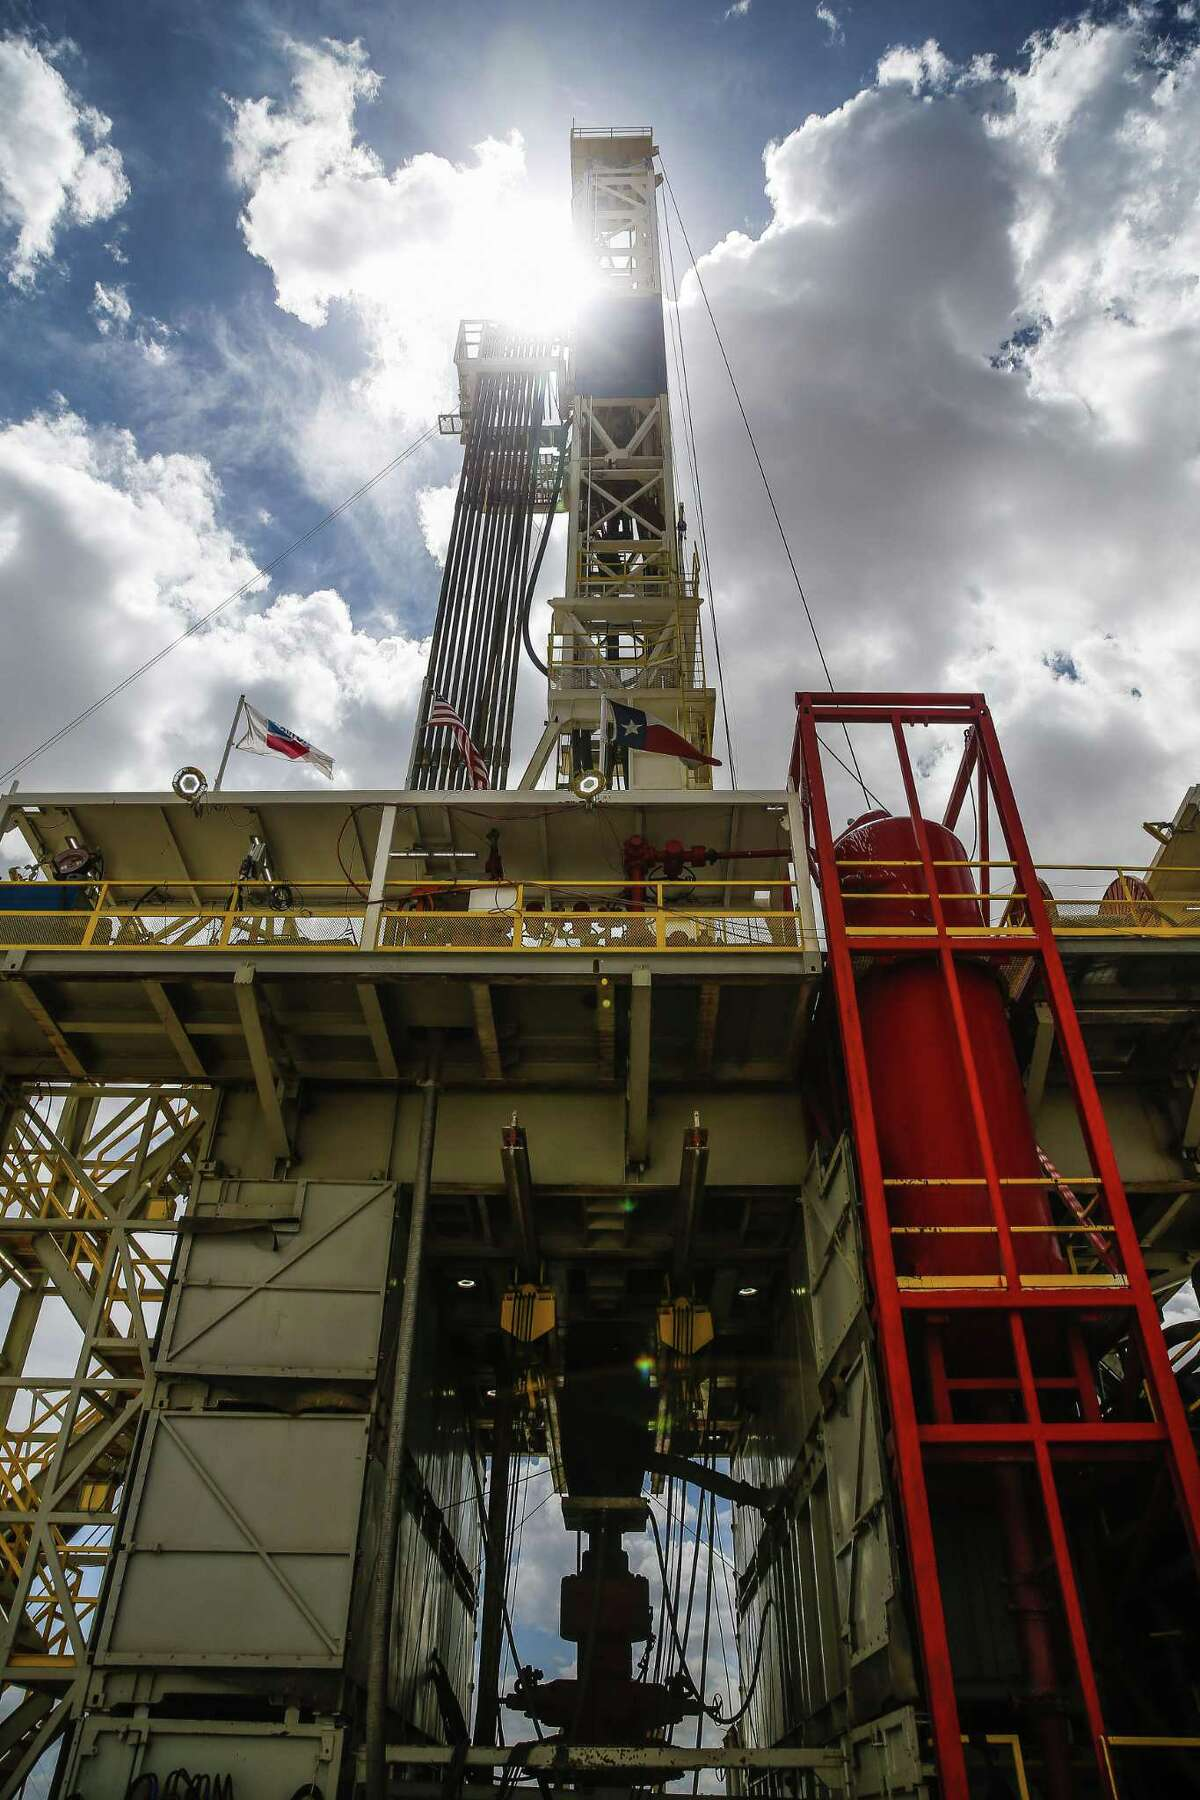 Permian Basin holdings for Texas Pacific Land Trust has made it the focal point of what is arguably the fiercest shareholder battle in the energy sector.